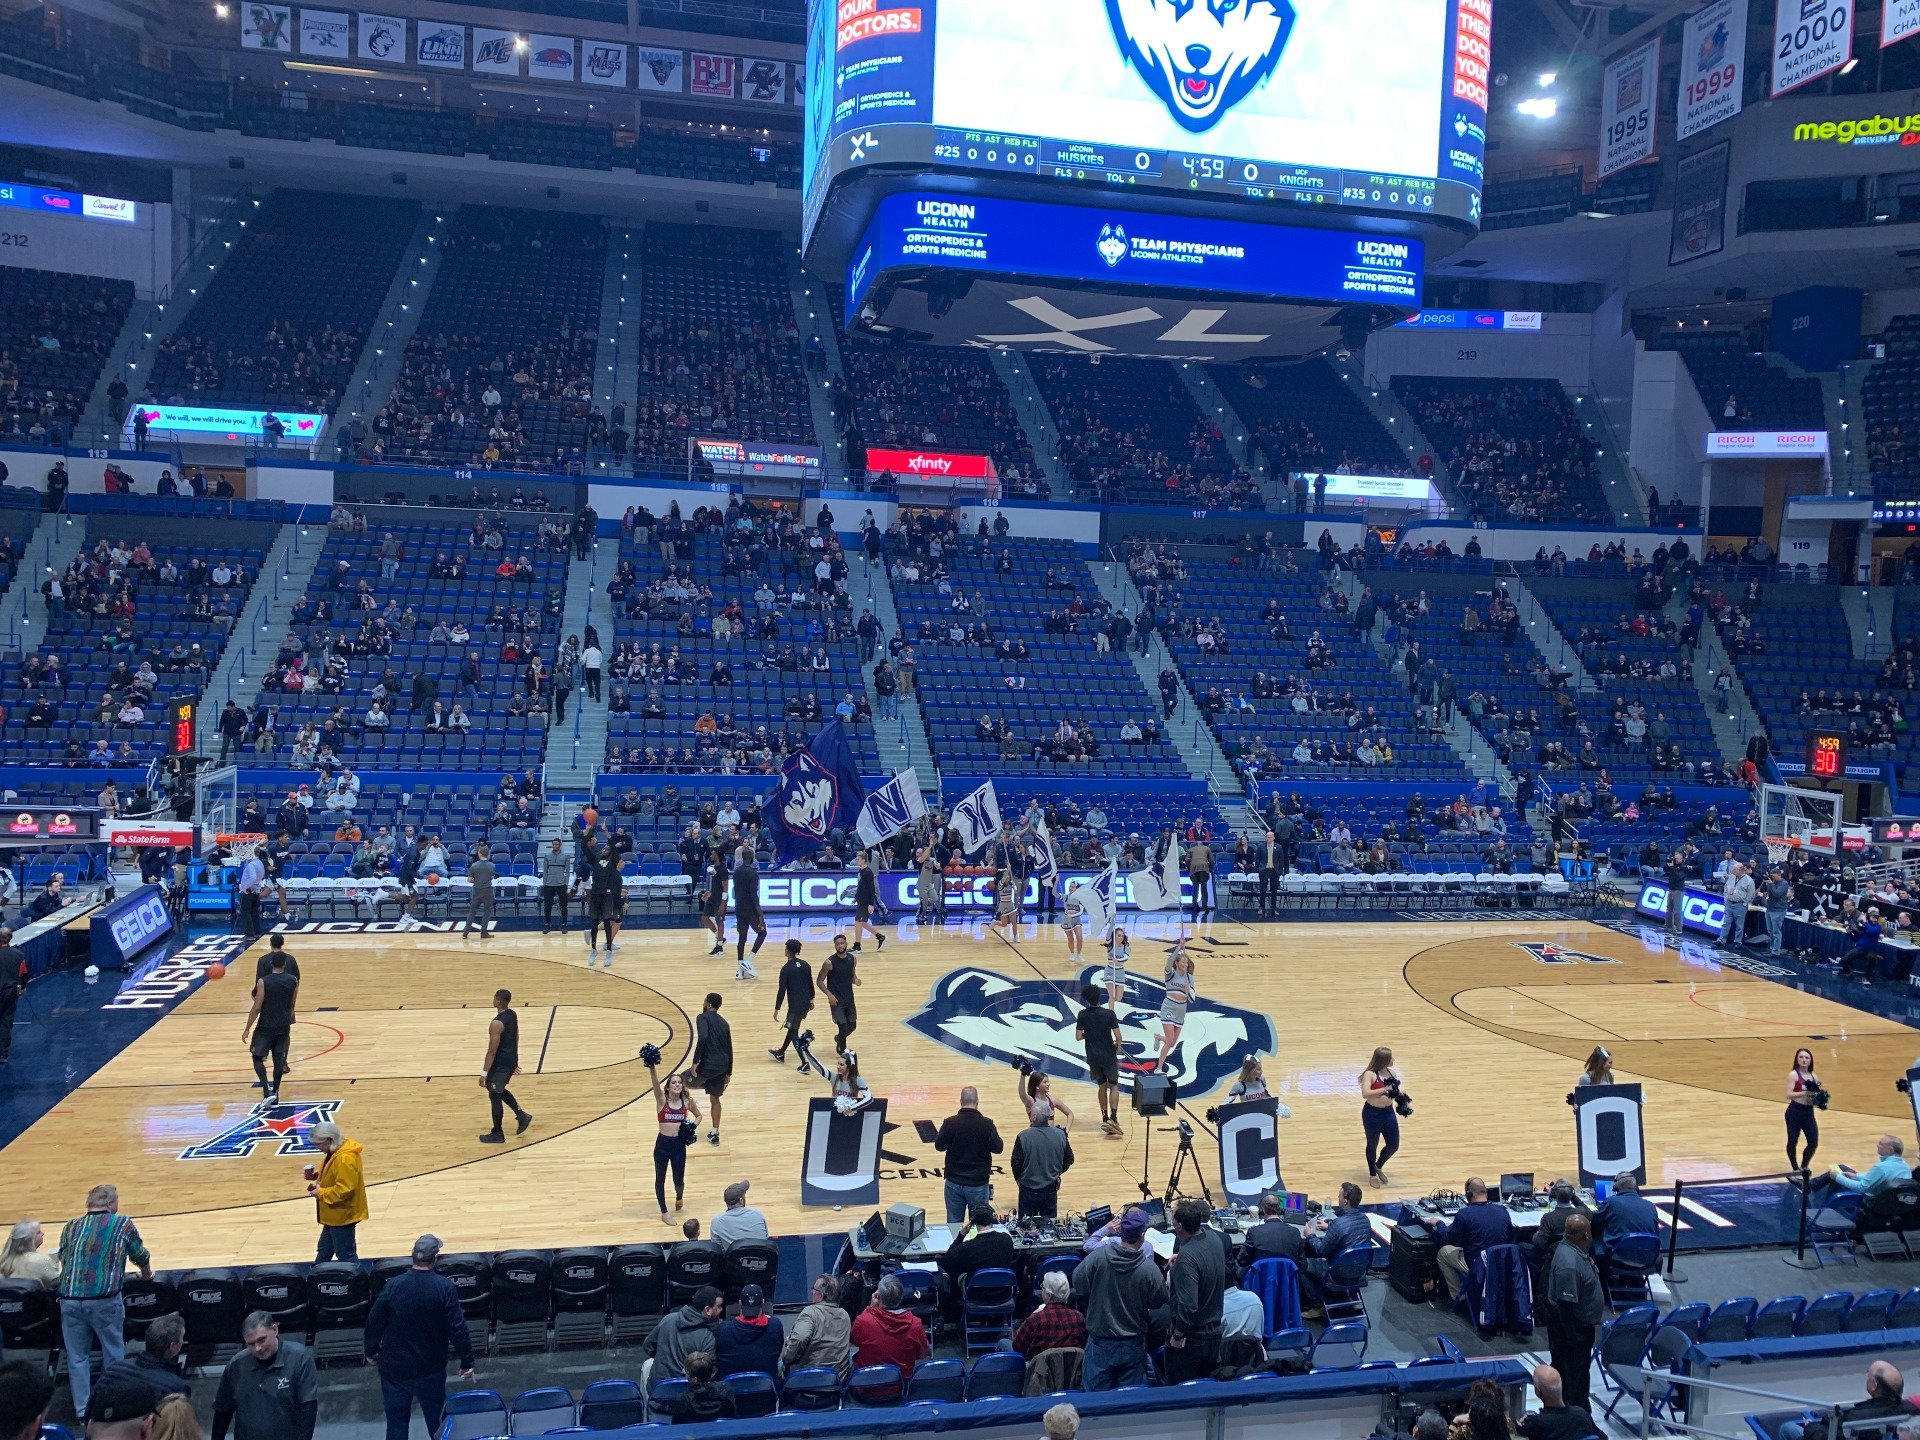 XL Center Section 104 Row P Seat 13